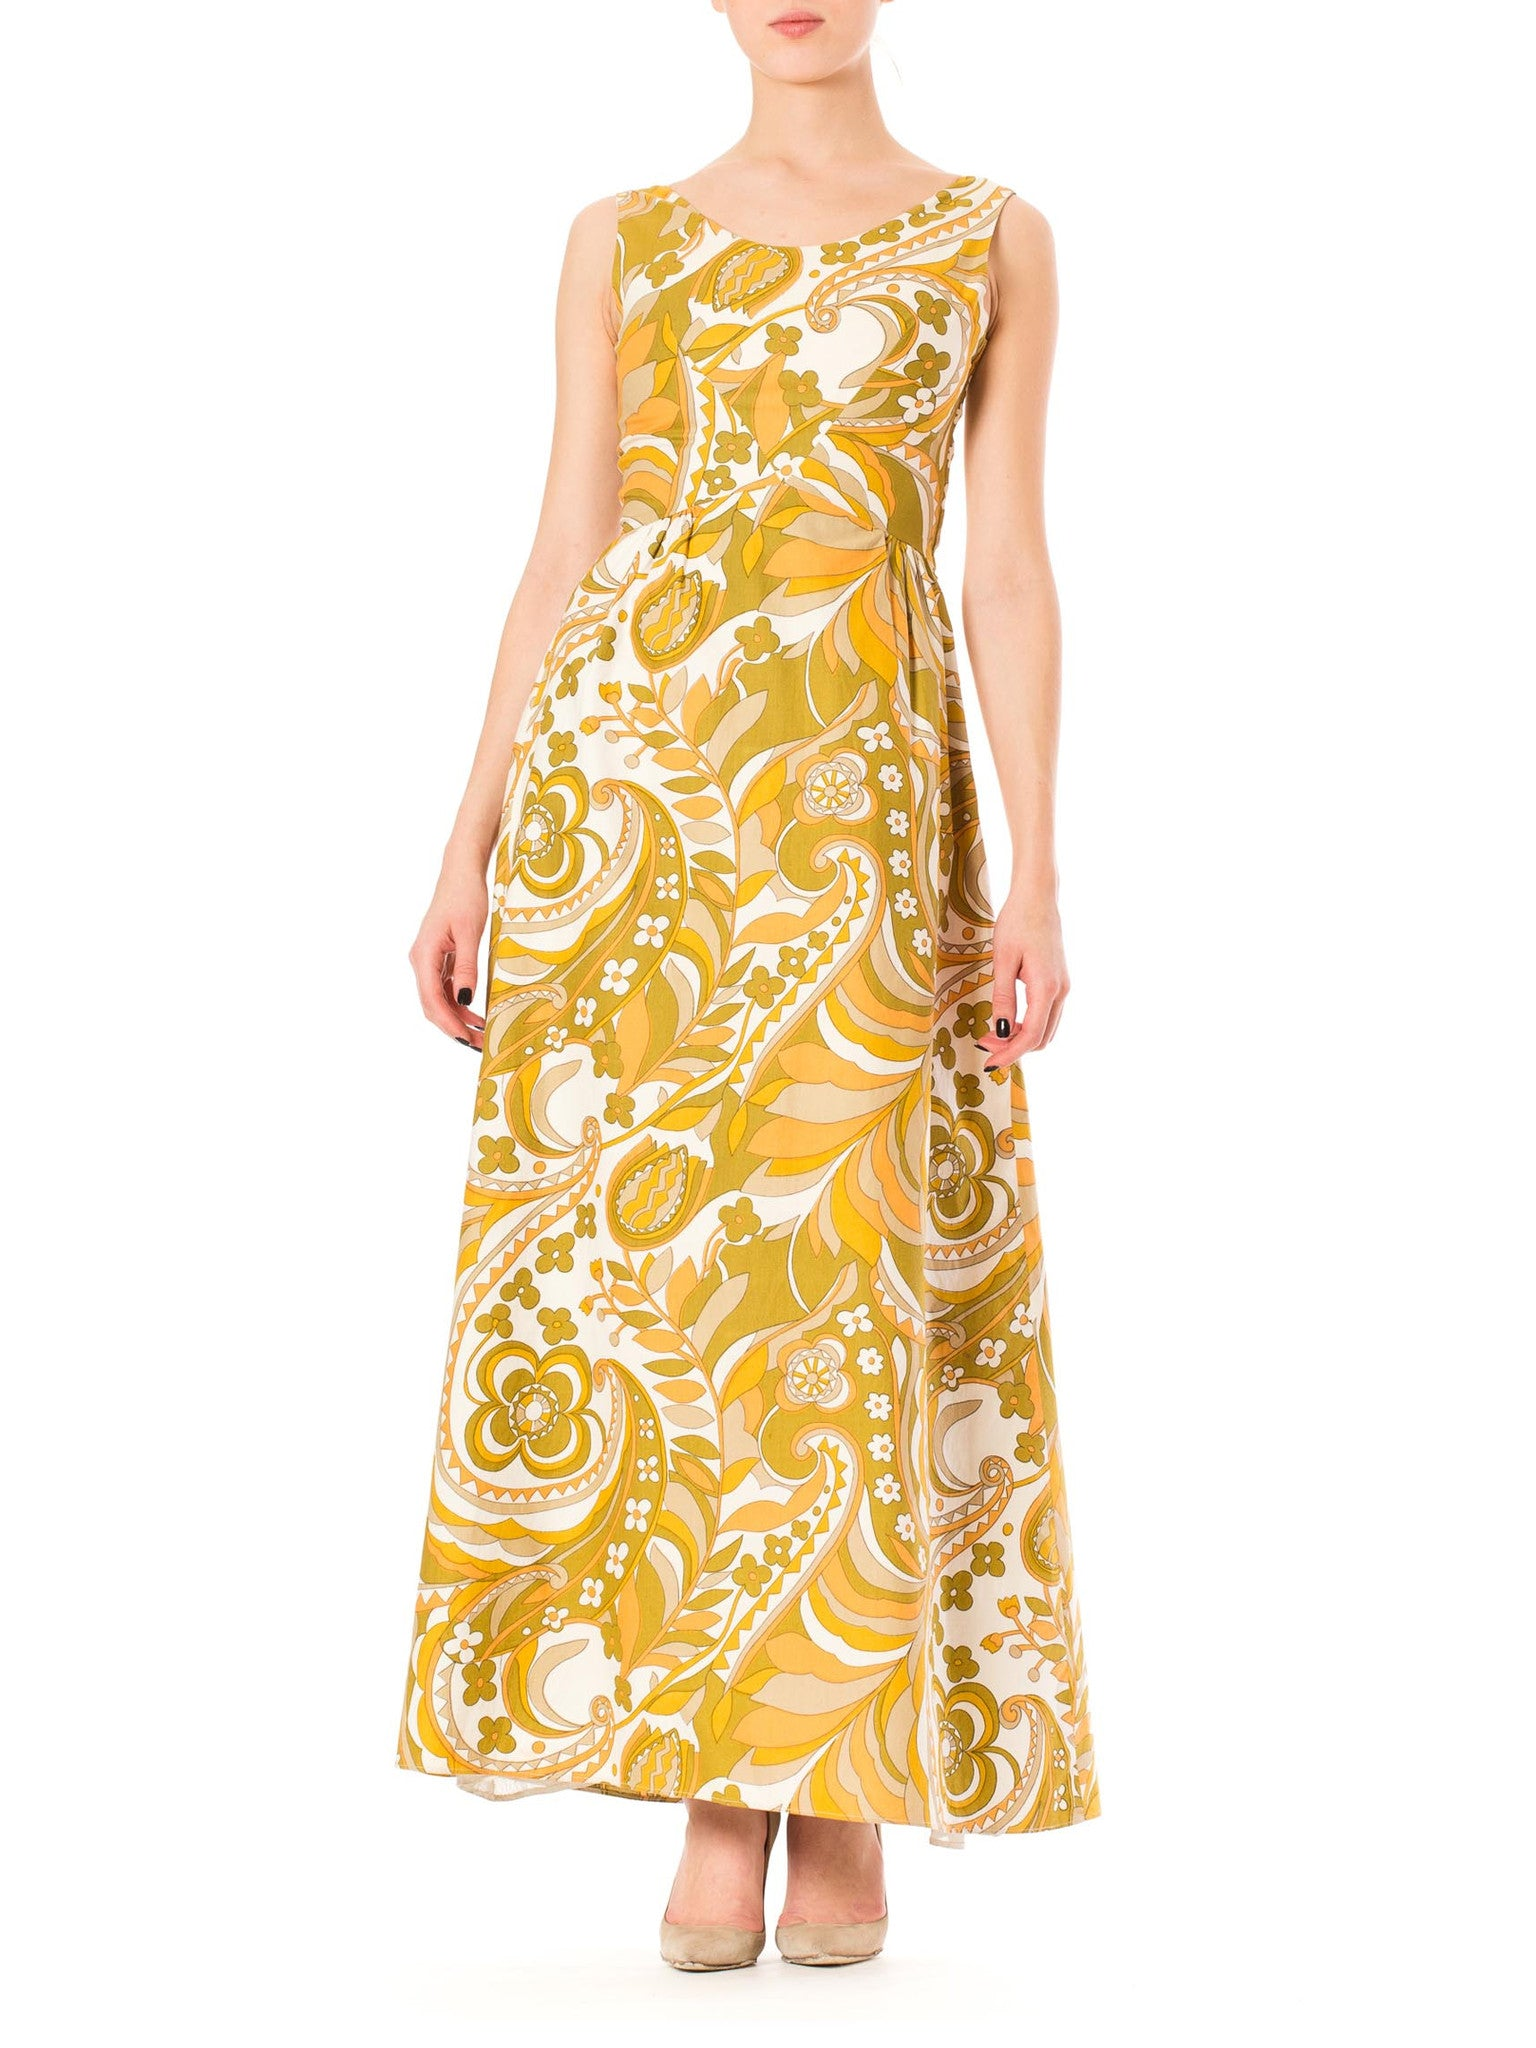 1970s Boho Mod Floral Pucci Print Sleeveless Maxi Dress